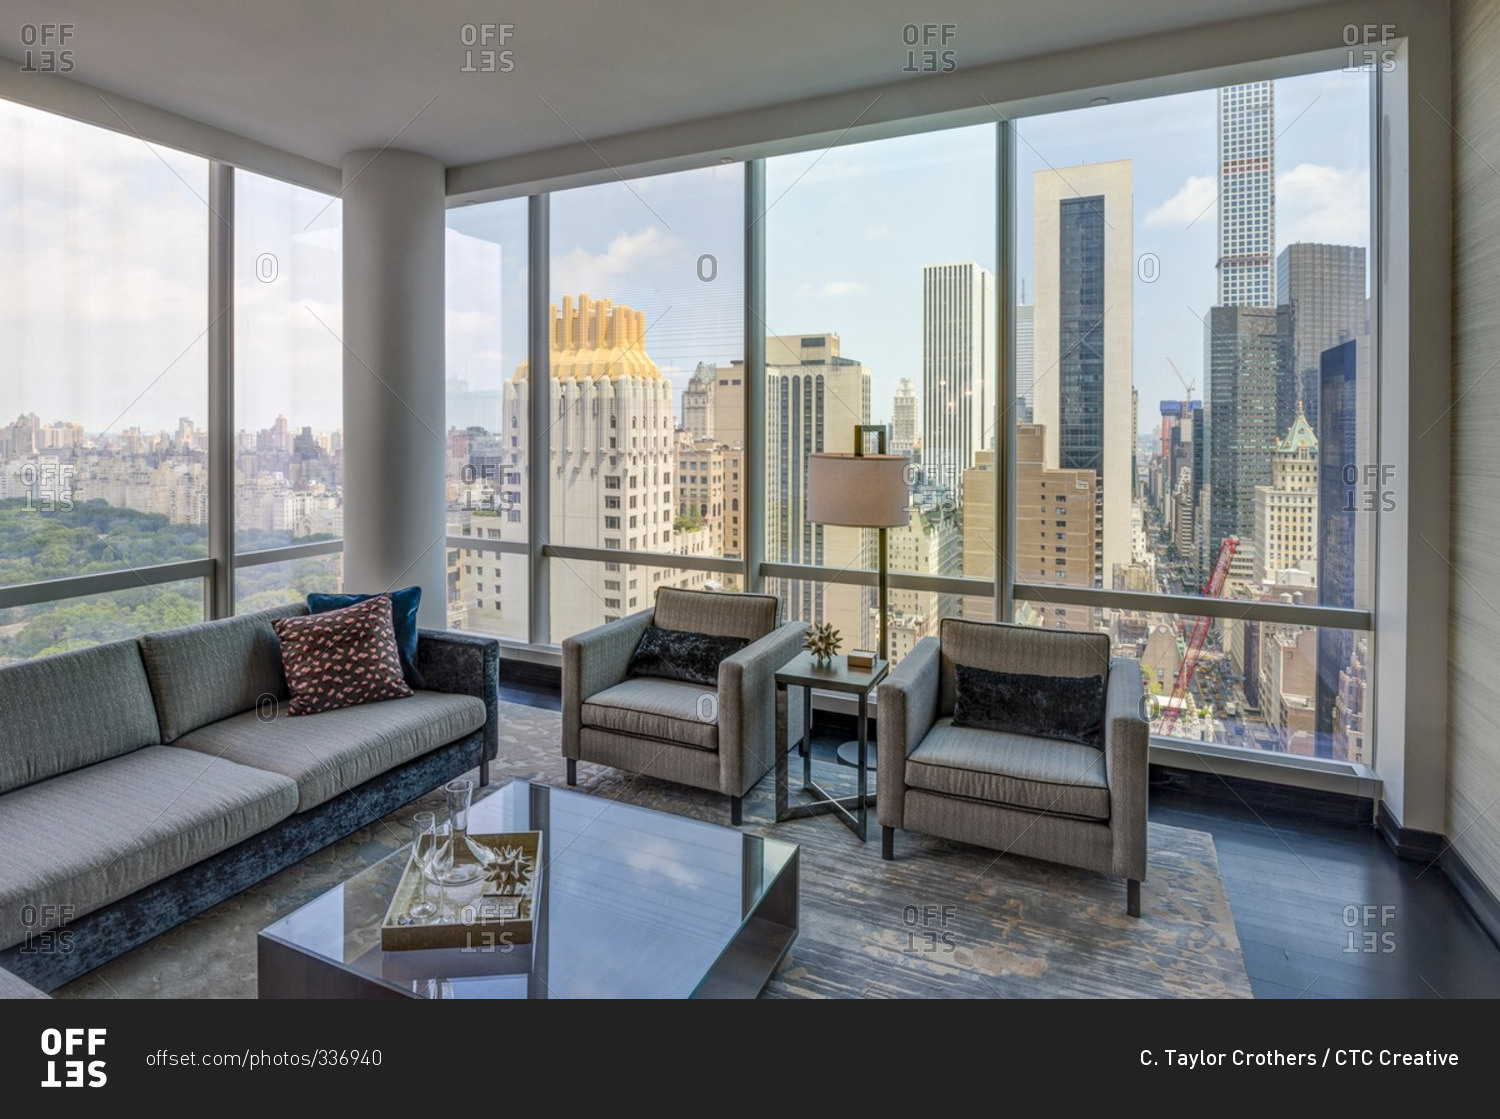 new york ny july 27 2015 luxury high rise apartment living room with view of central park. Black Bedroom Furniture Sets. Home Design Ideas